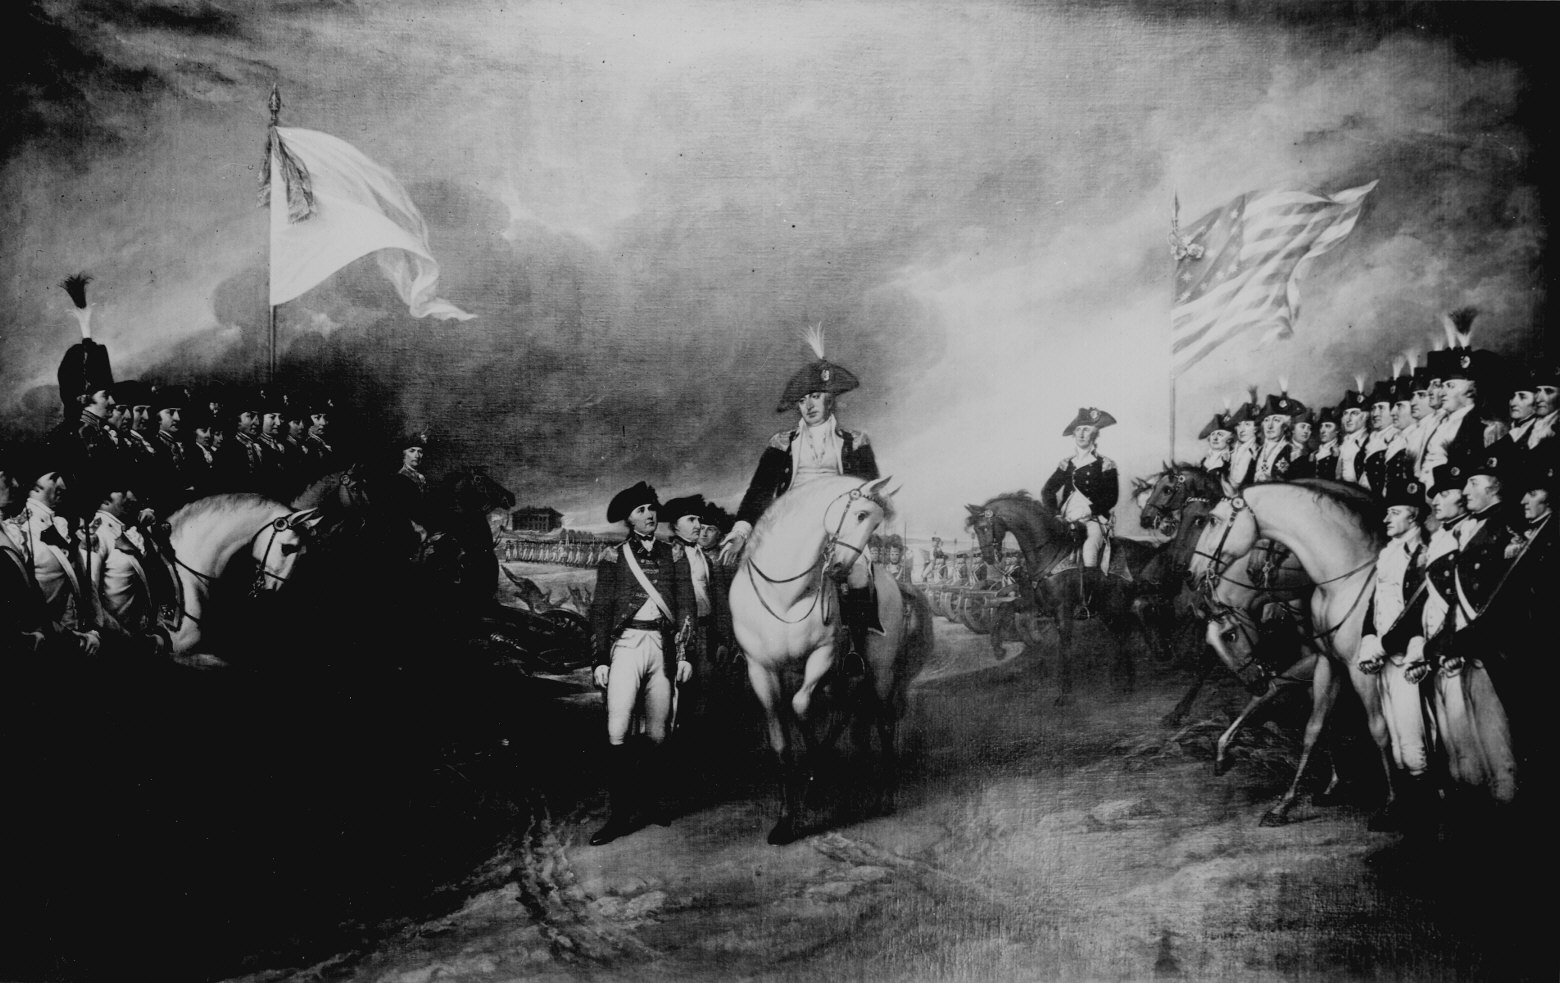 Essay on revolutionary war